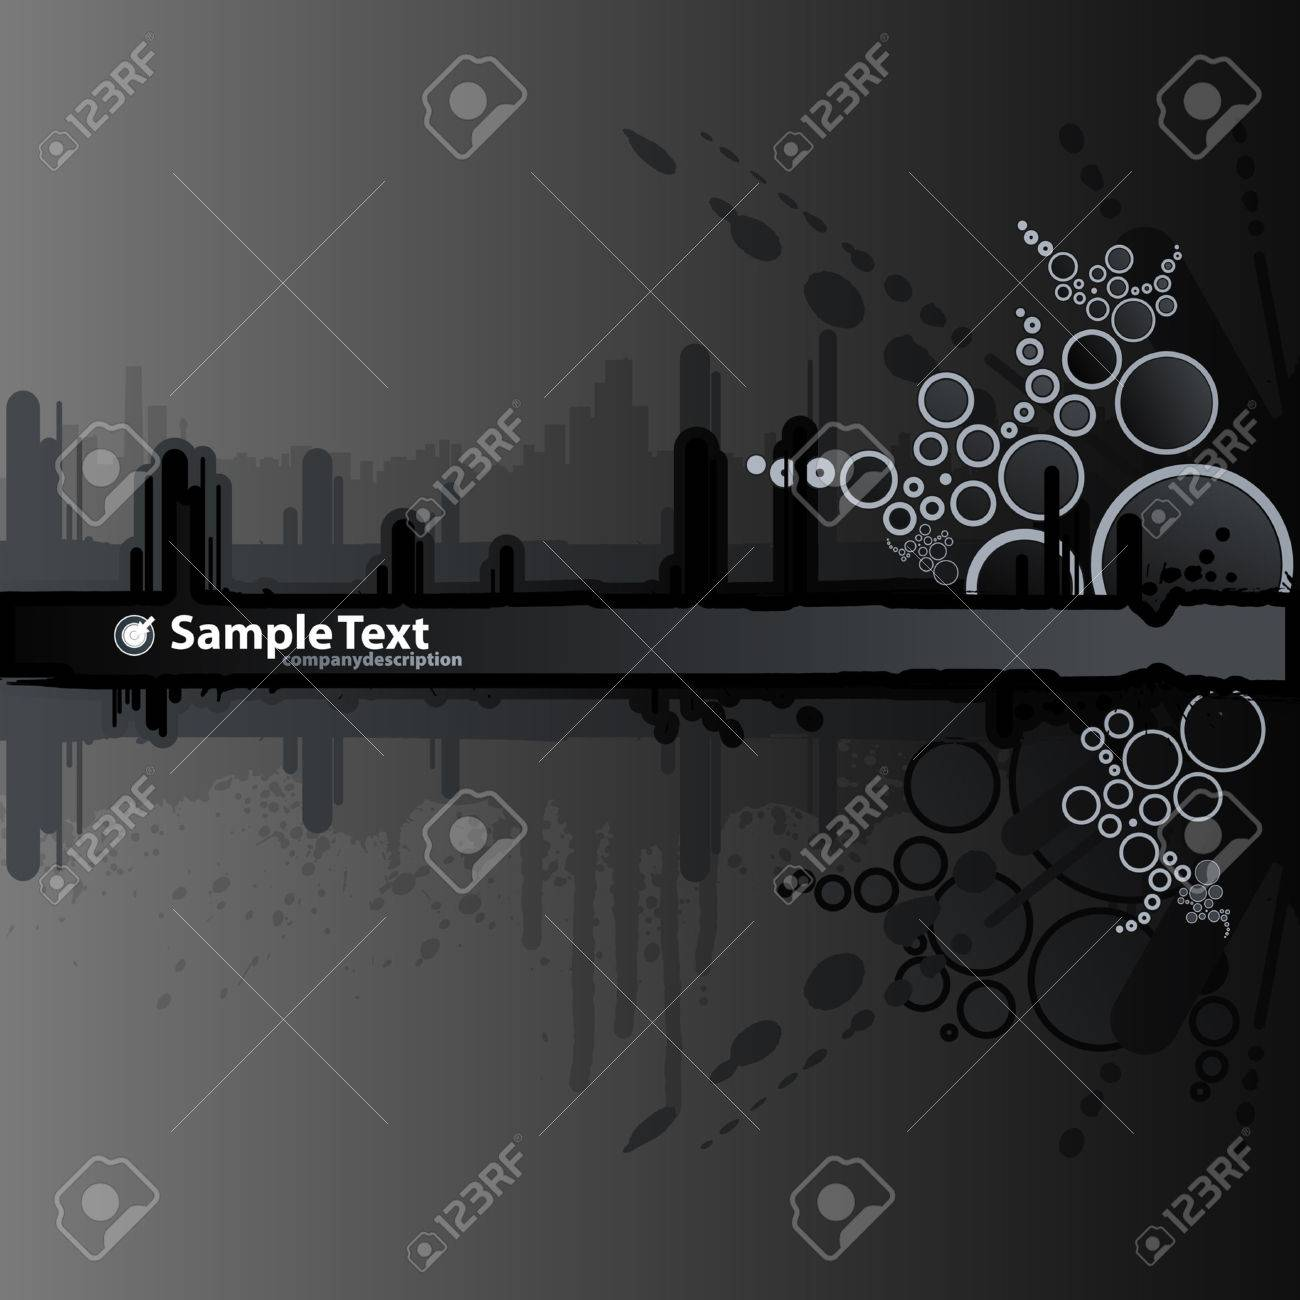 Vector illustration of a grunge and retro dark black background with ink splatter elements, retro circles and drops and stripe for custom text. Urban cityscape backdrop. - 3551587